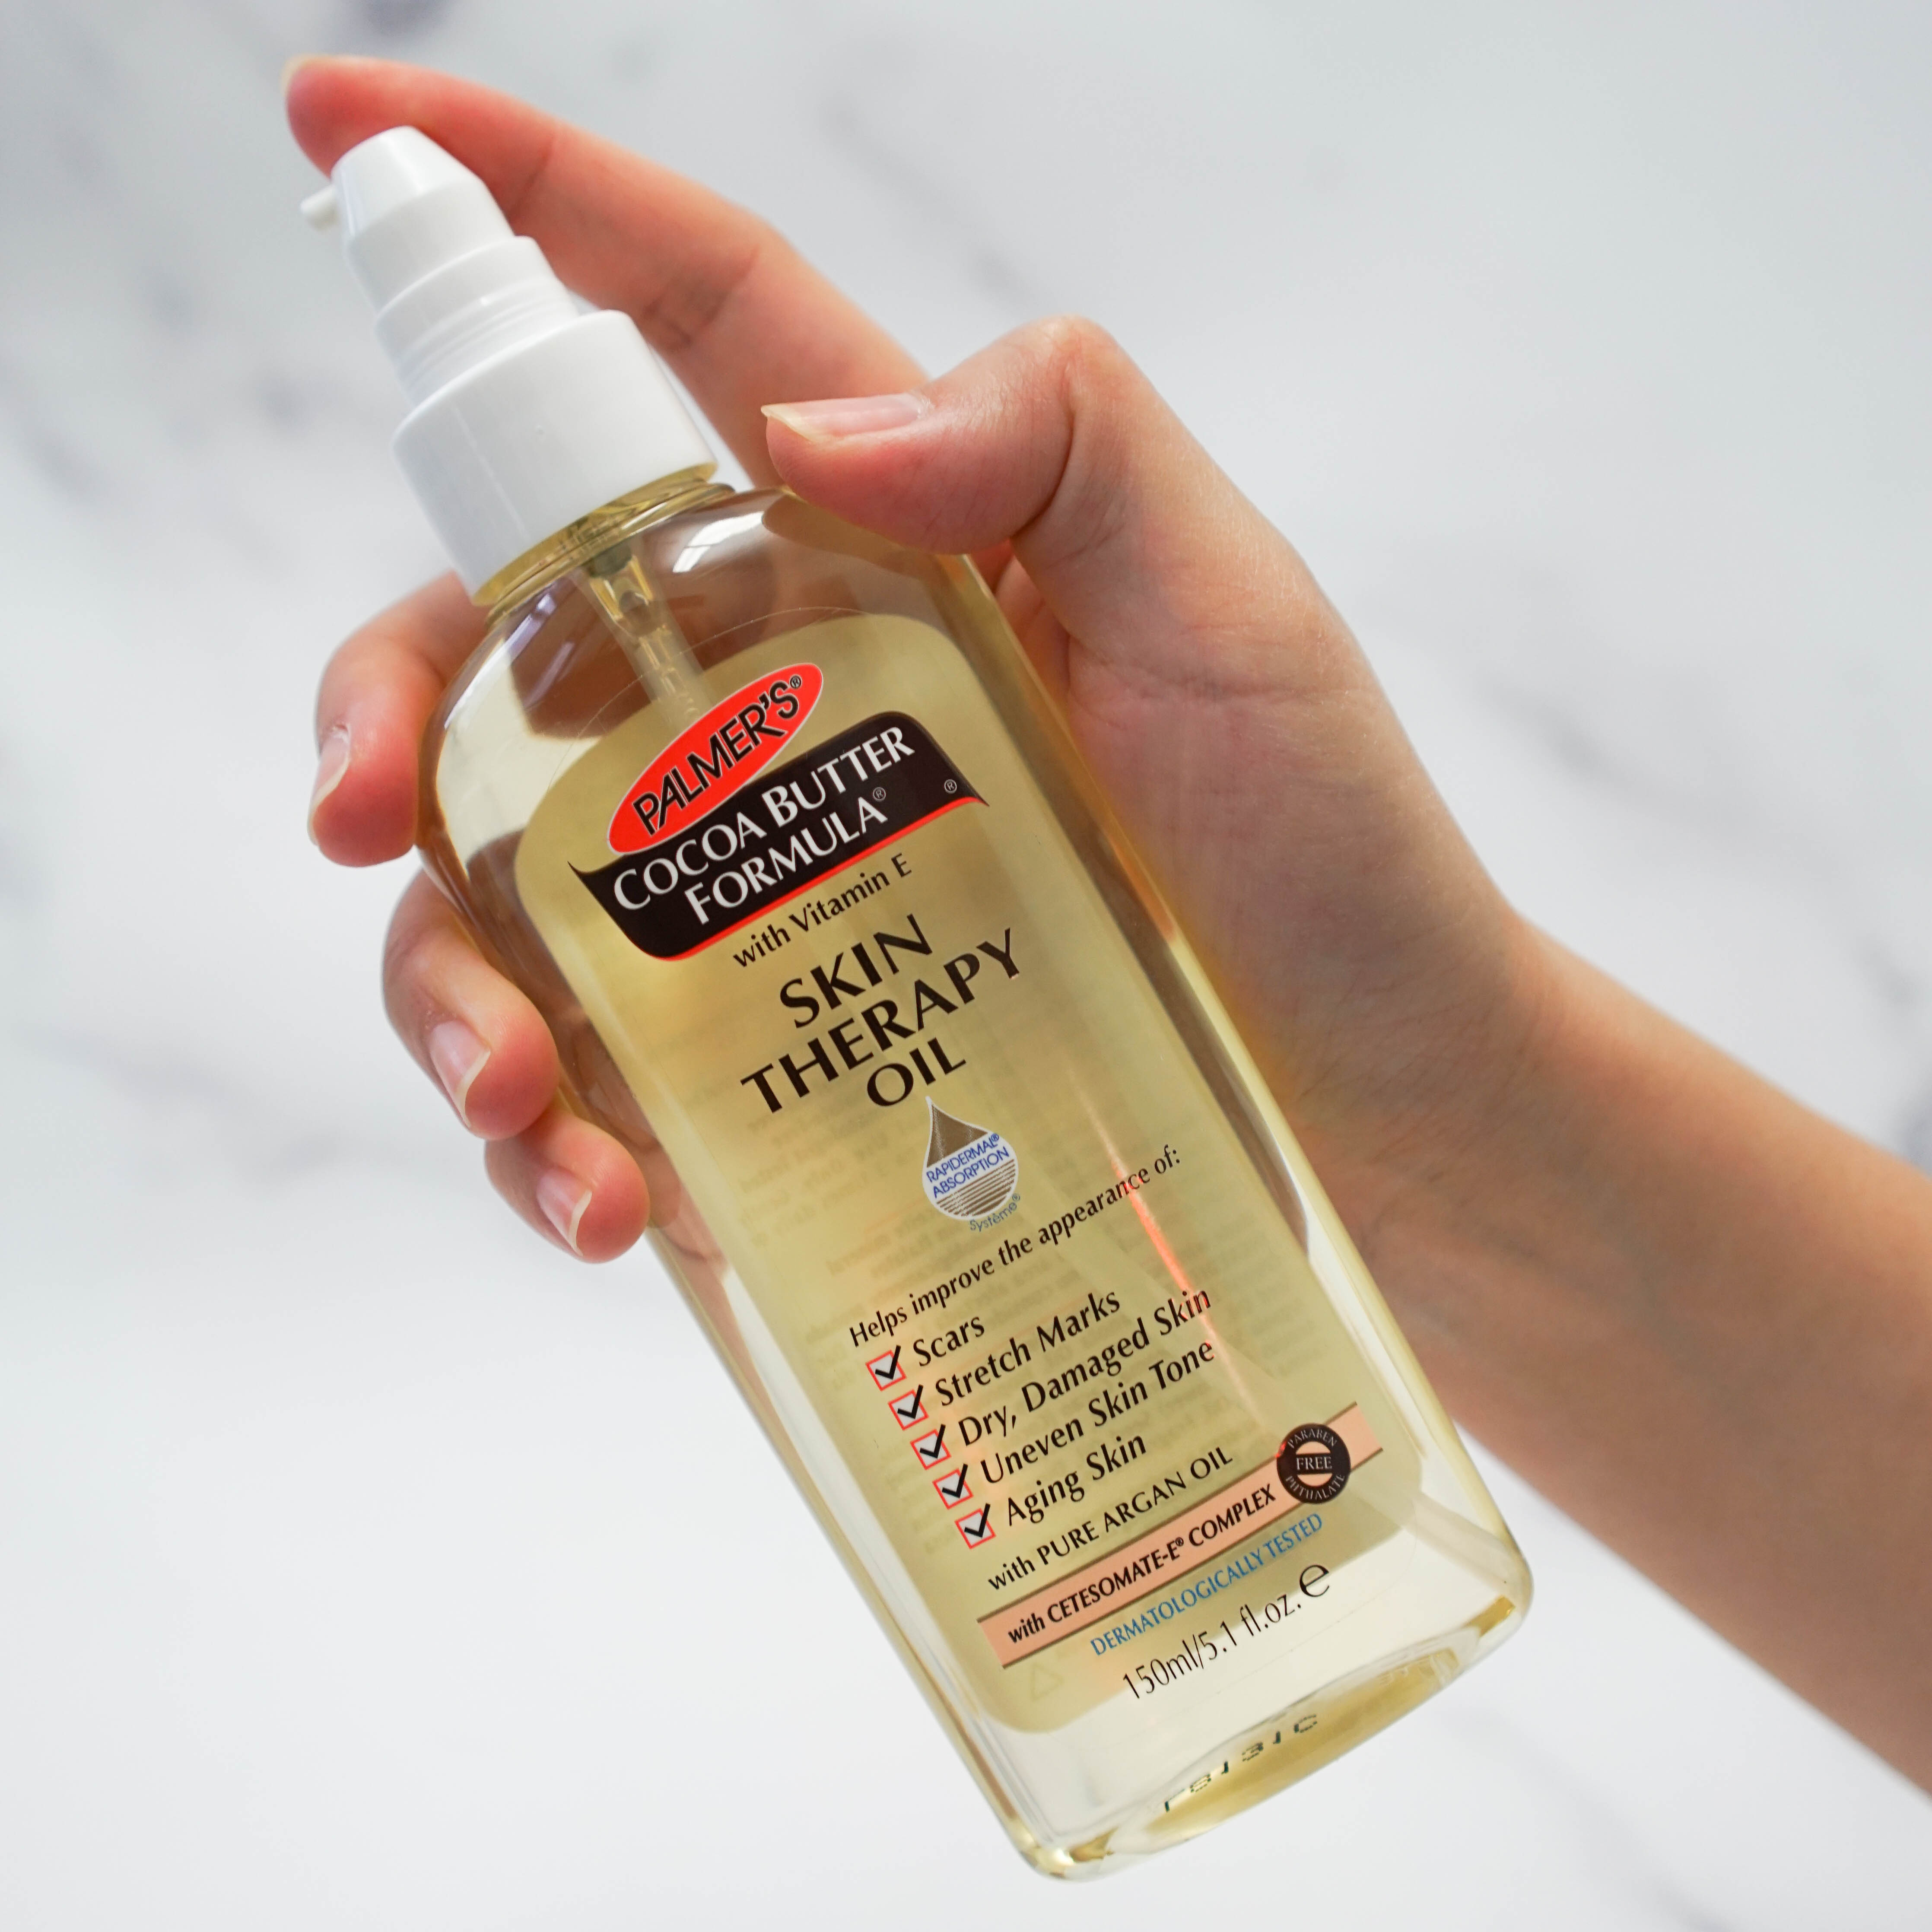 Palmer's Cocoa Butter Formula Skin Therapy Oil for Pregnancy Stretch Marks